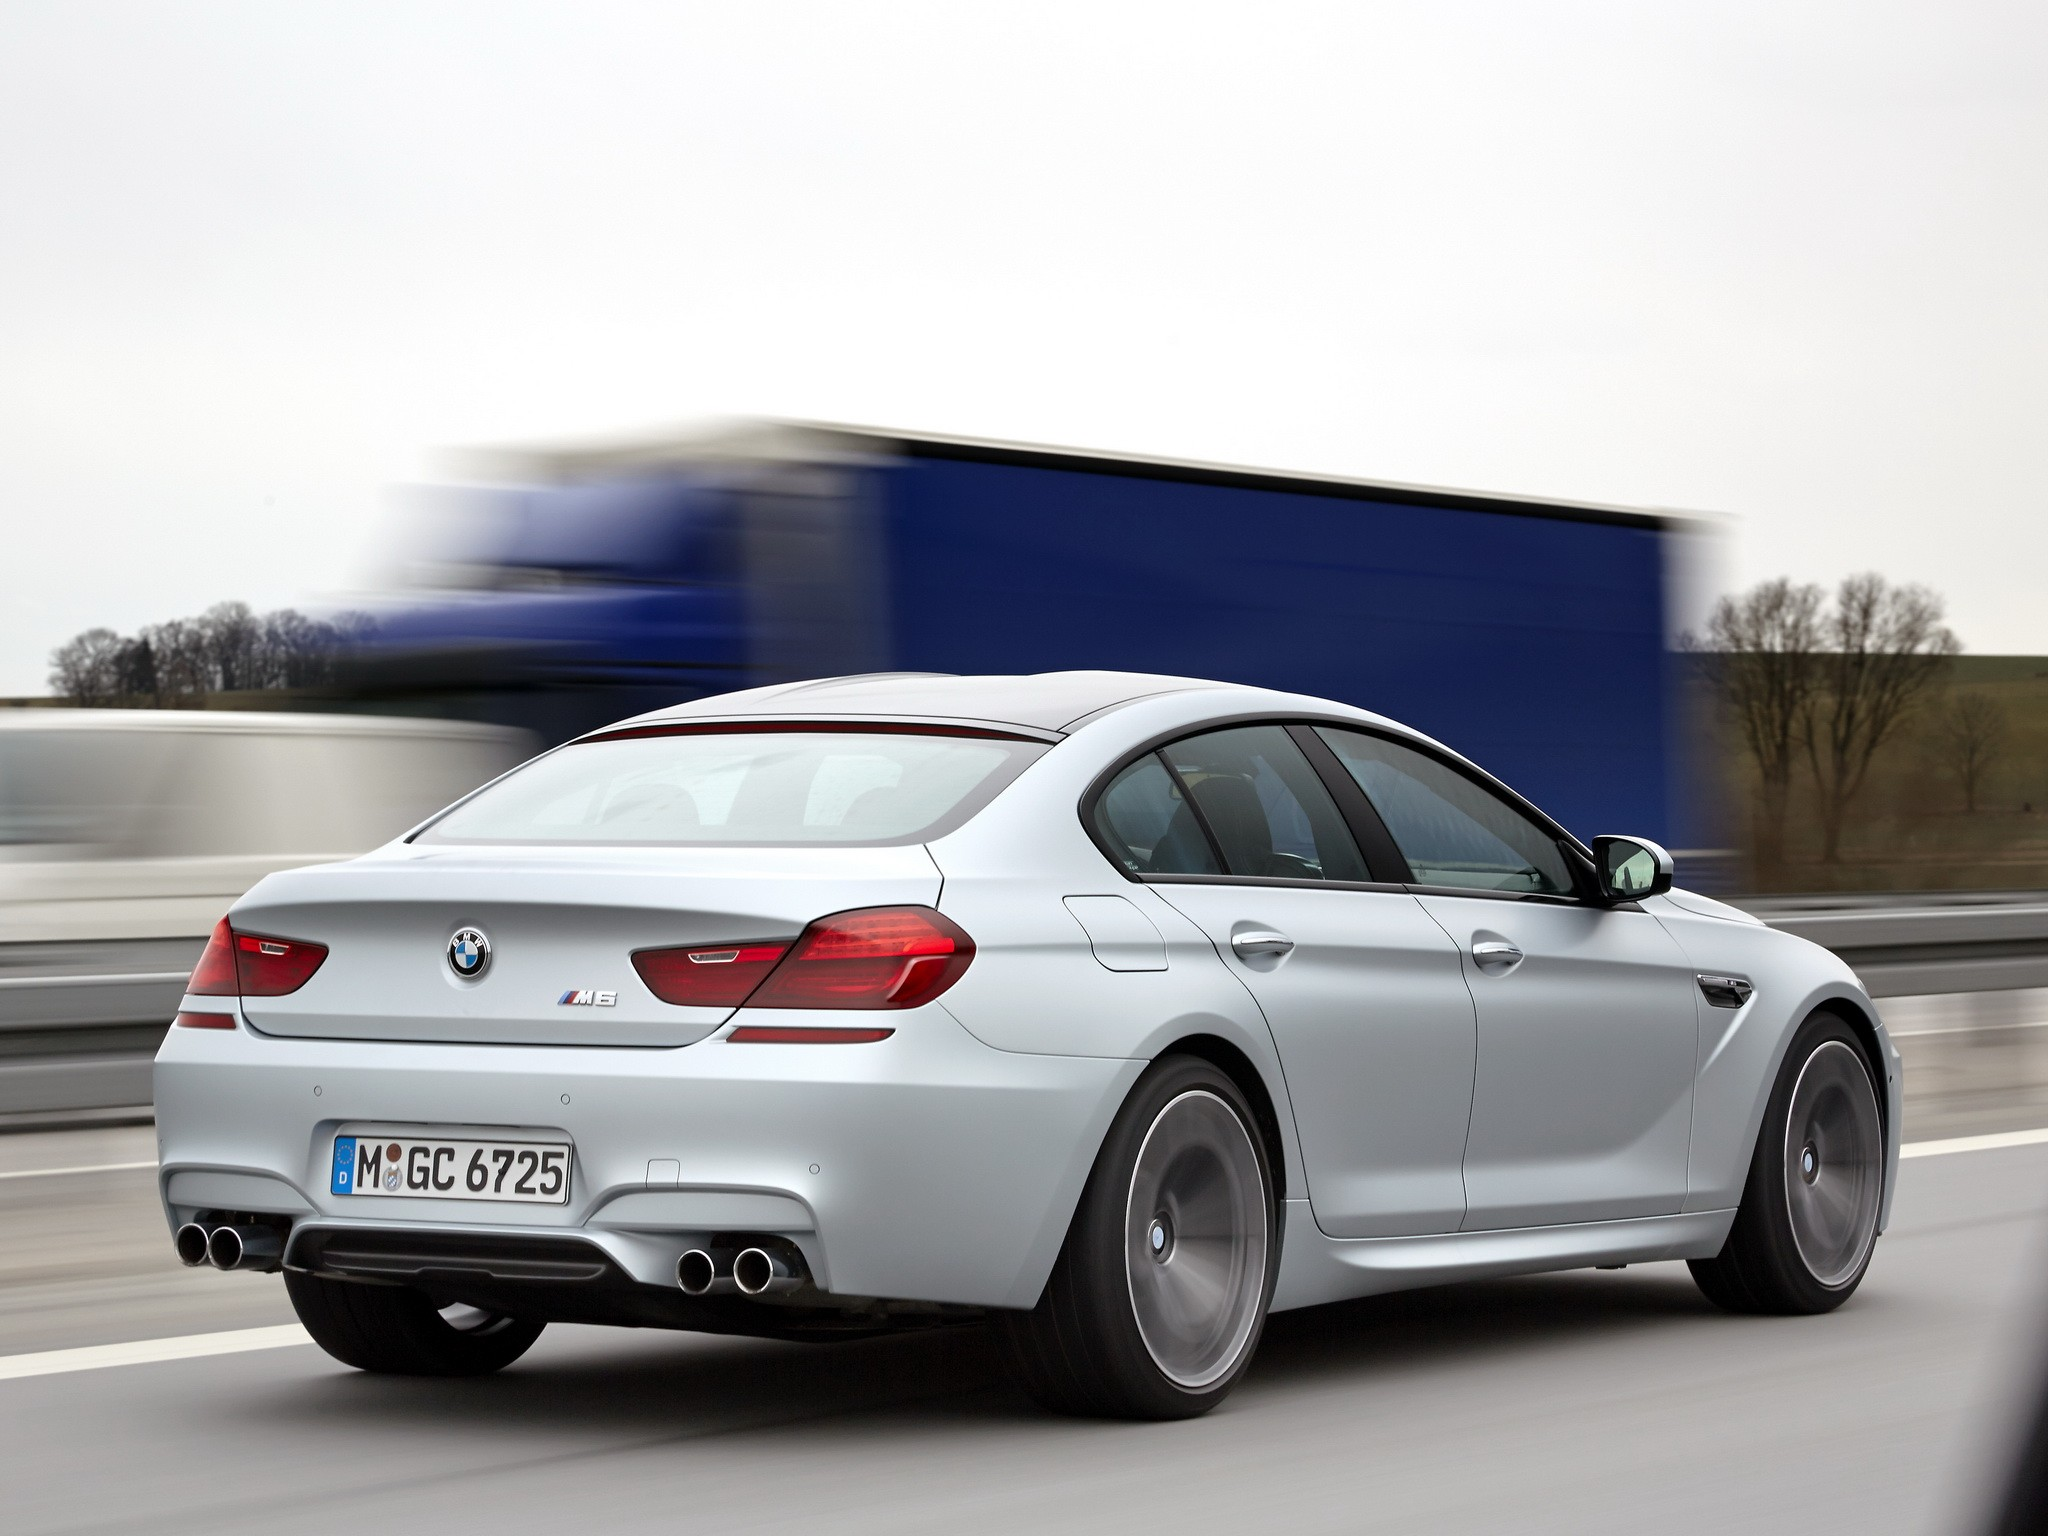 bmw m6 gran coupe f06 specs photos 2013 2014 2015. Black Bedroom Furniture Sets. Home Design Ideas